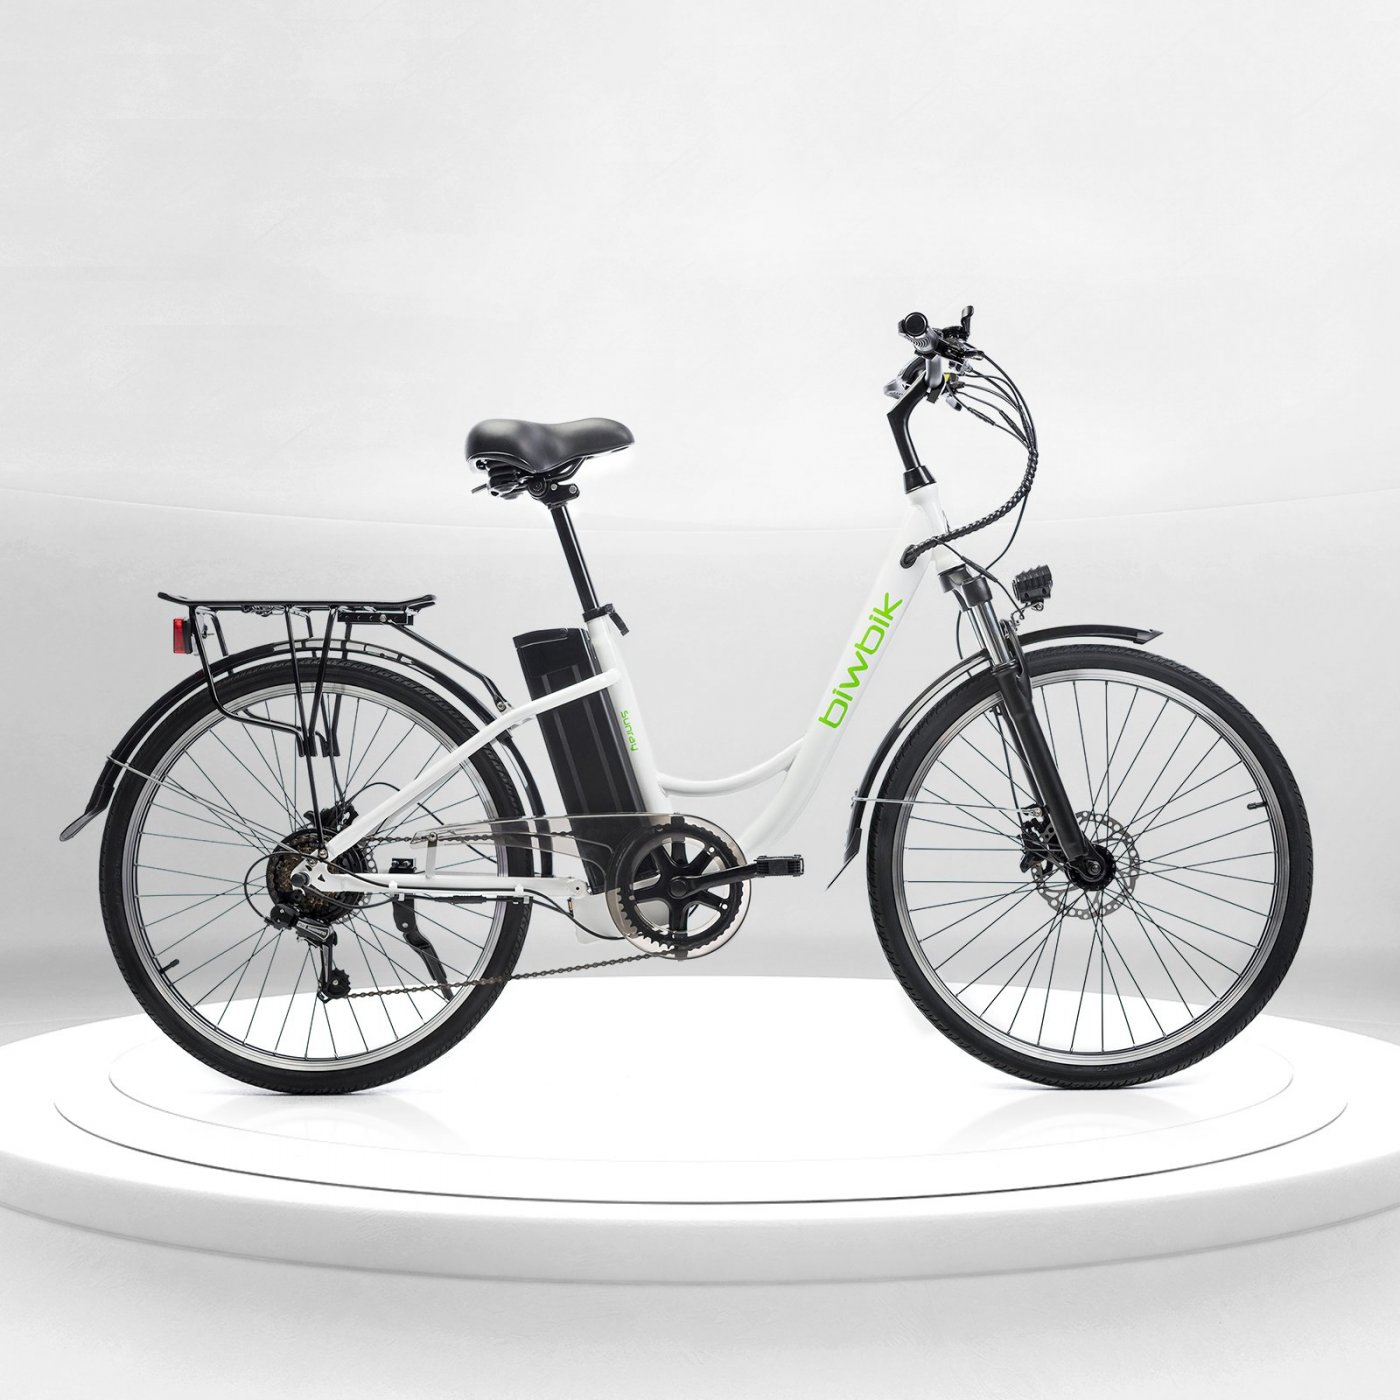 Biwbik Sunray white electric touring bike